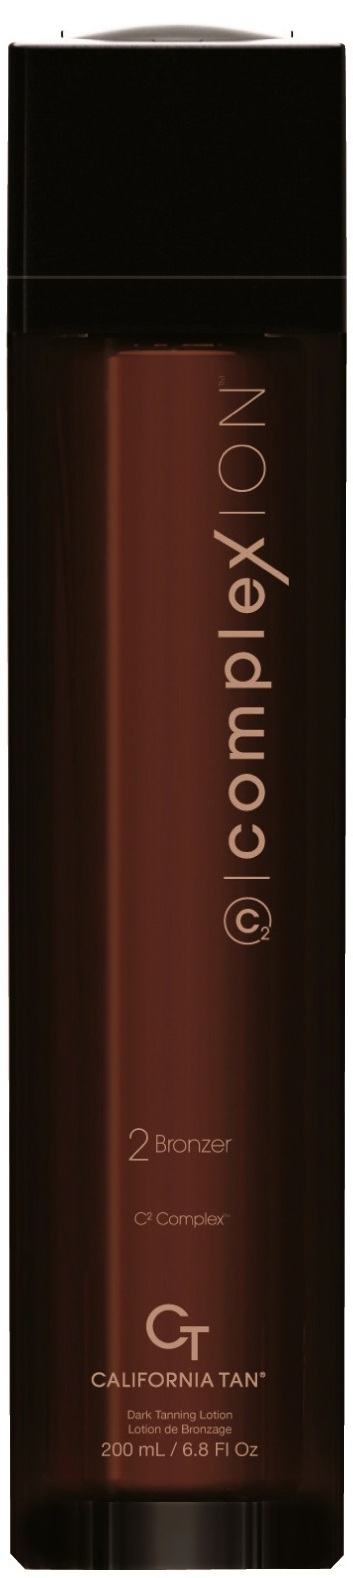 California Tan NEW complexION™ Step 2 Bronzer #tanninglotion